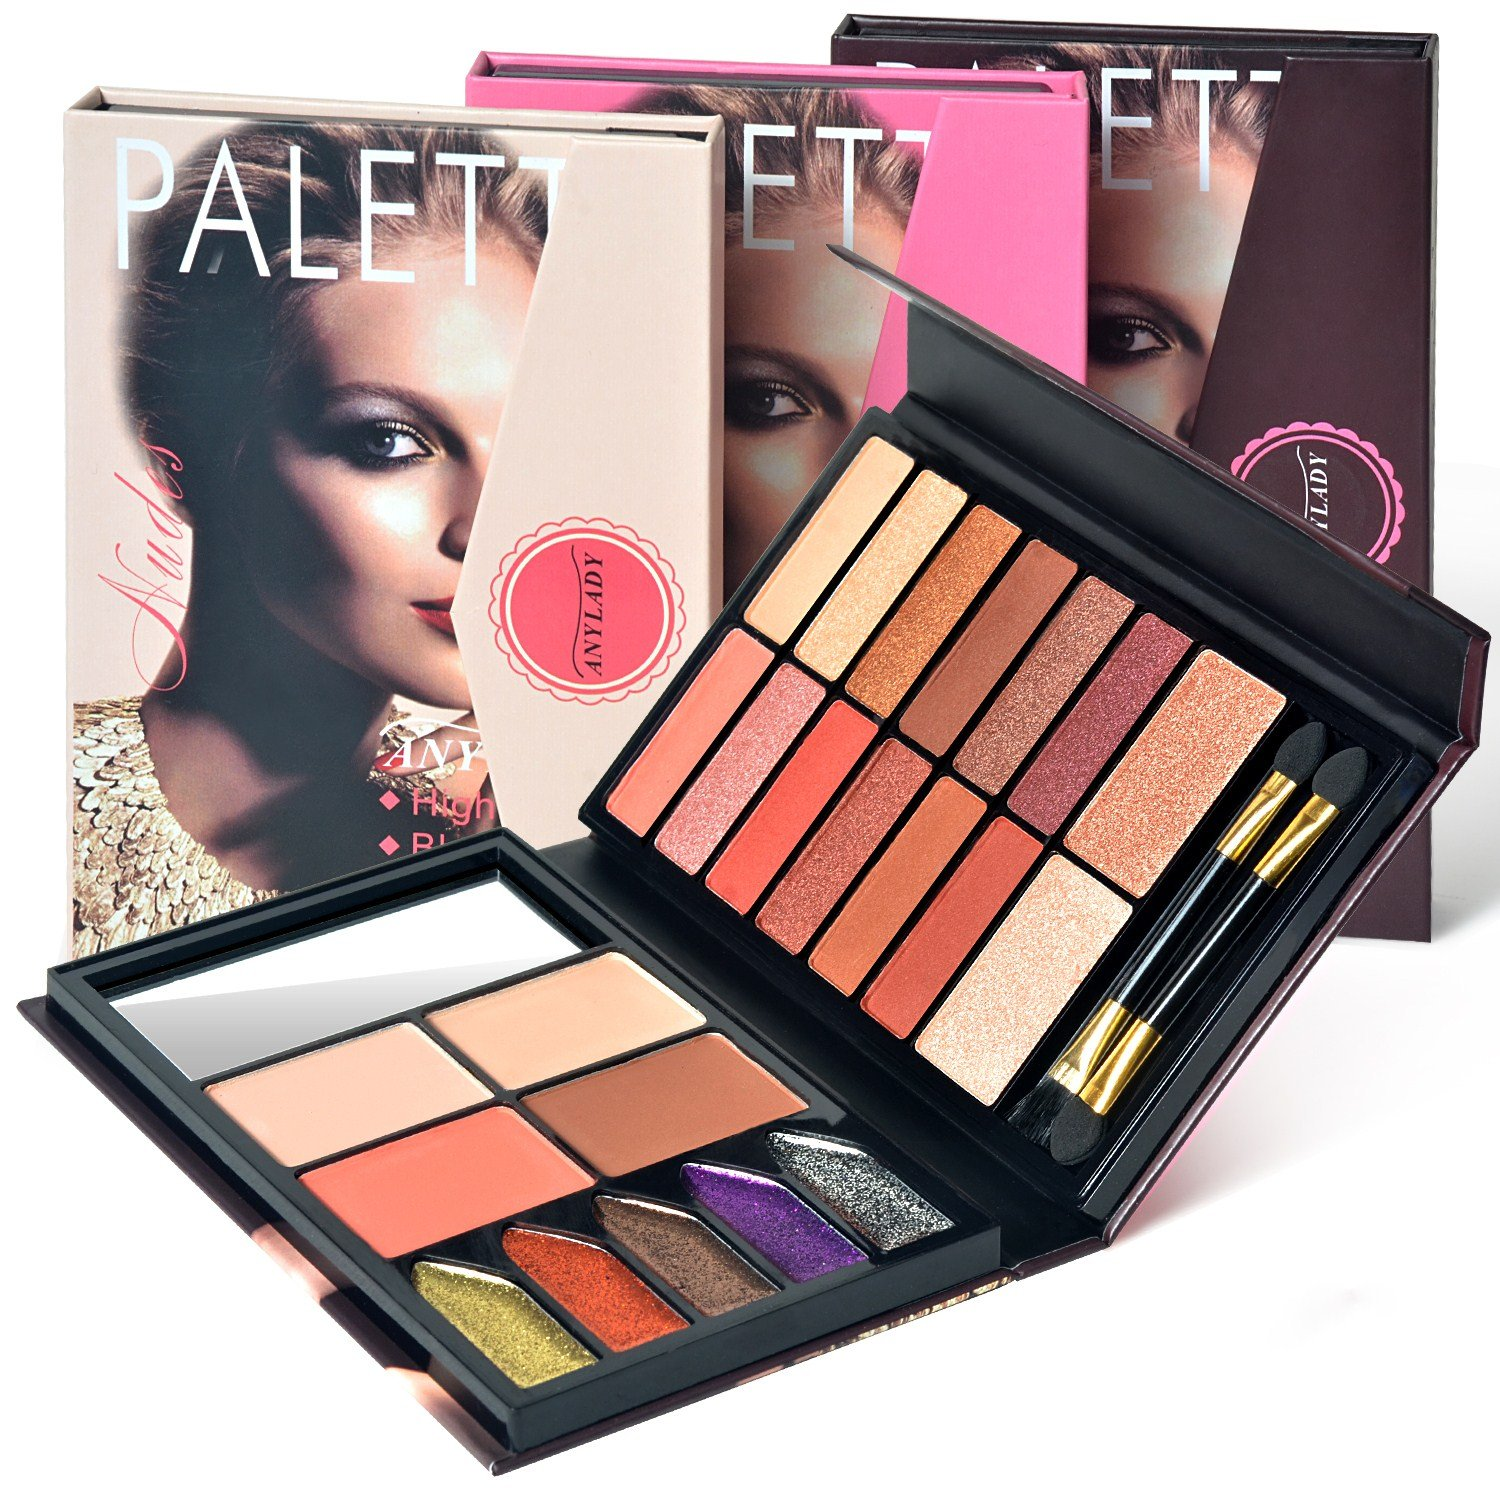 Eye Shadow Palette,Shimmer and Matte Eye Shadow with Blush, Contour and Lip Palette, Makeup Kit Set 23 Colors Imanom